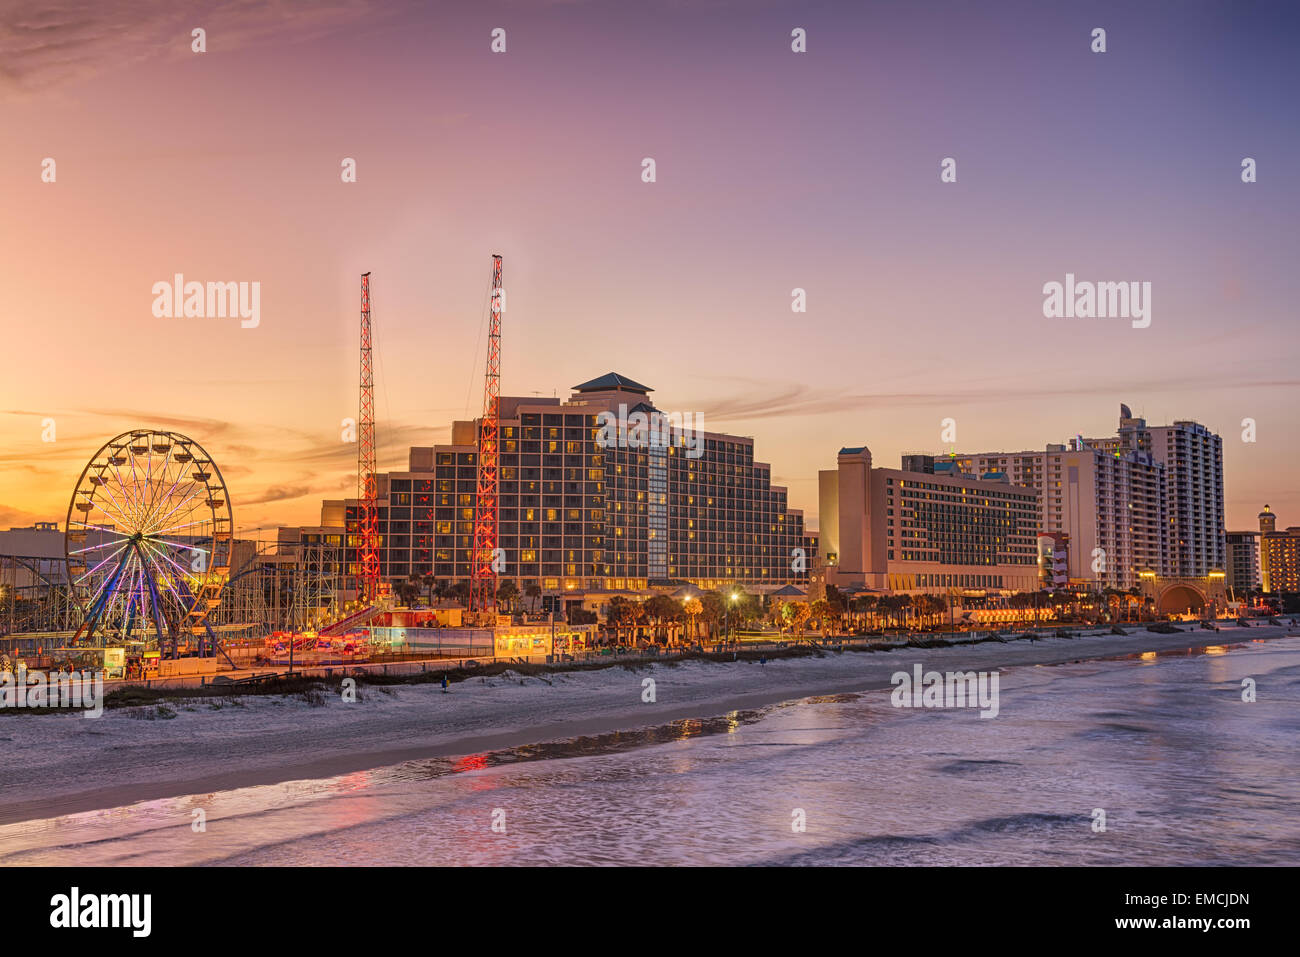 Skyline of Daytona Beach, Florida, at sunset from the fishing pier. Hdr processed. - Stock Image